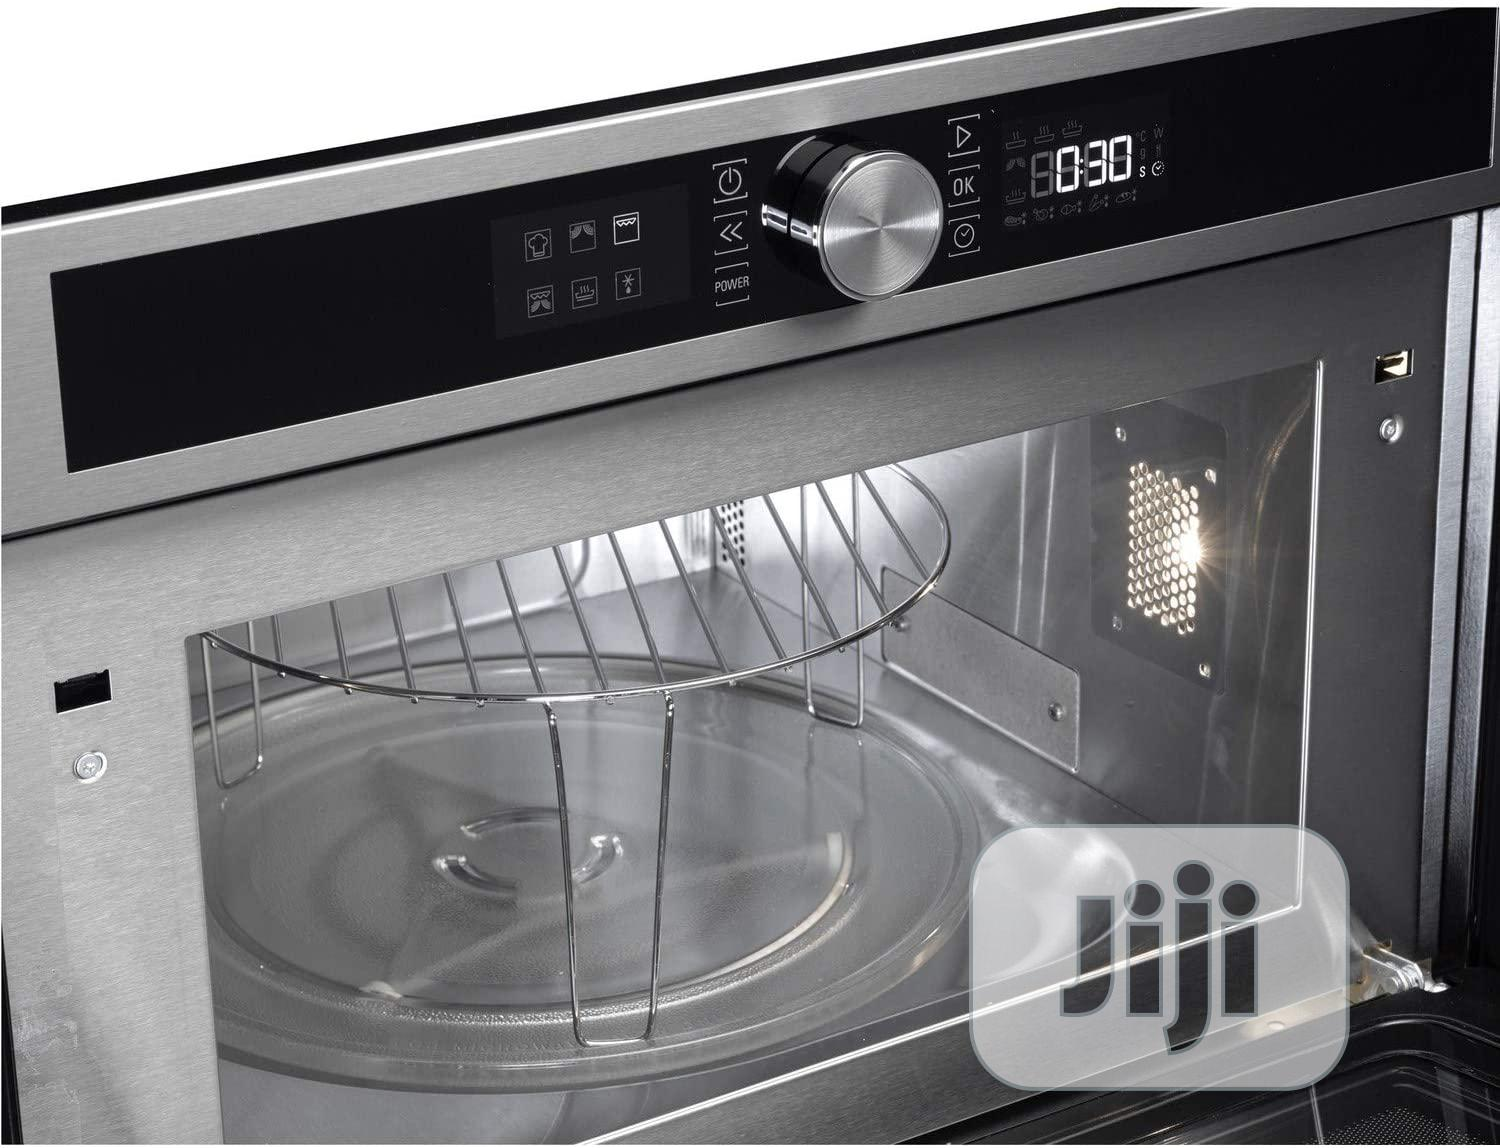 Hotpoint Class 4 MD454IXH 31L Built-In Microwave Oven | Kitchen Appliances for sale in Ojo, Lagos State, Nigeria